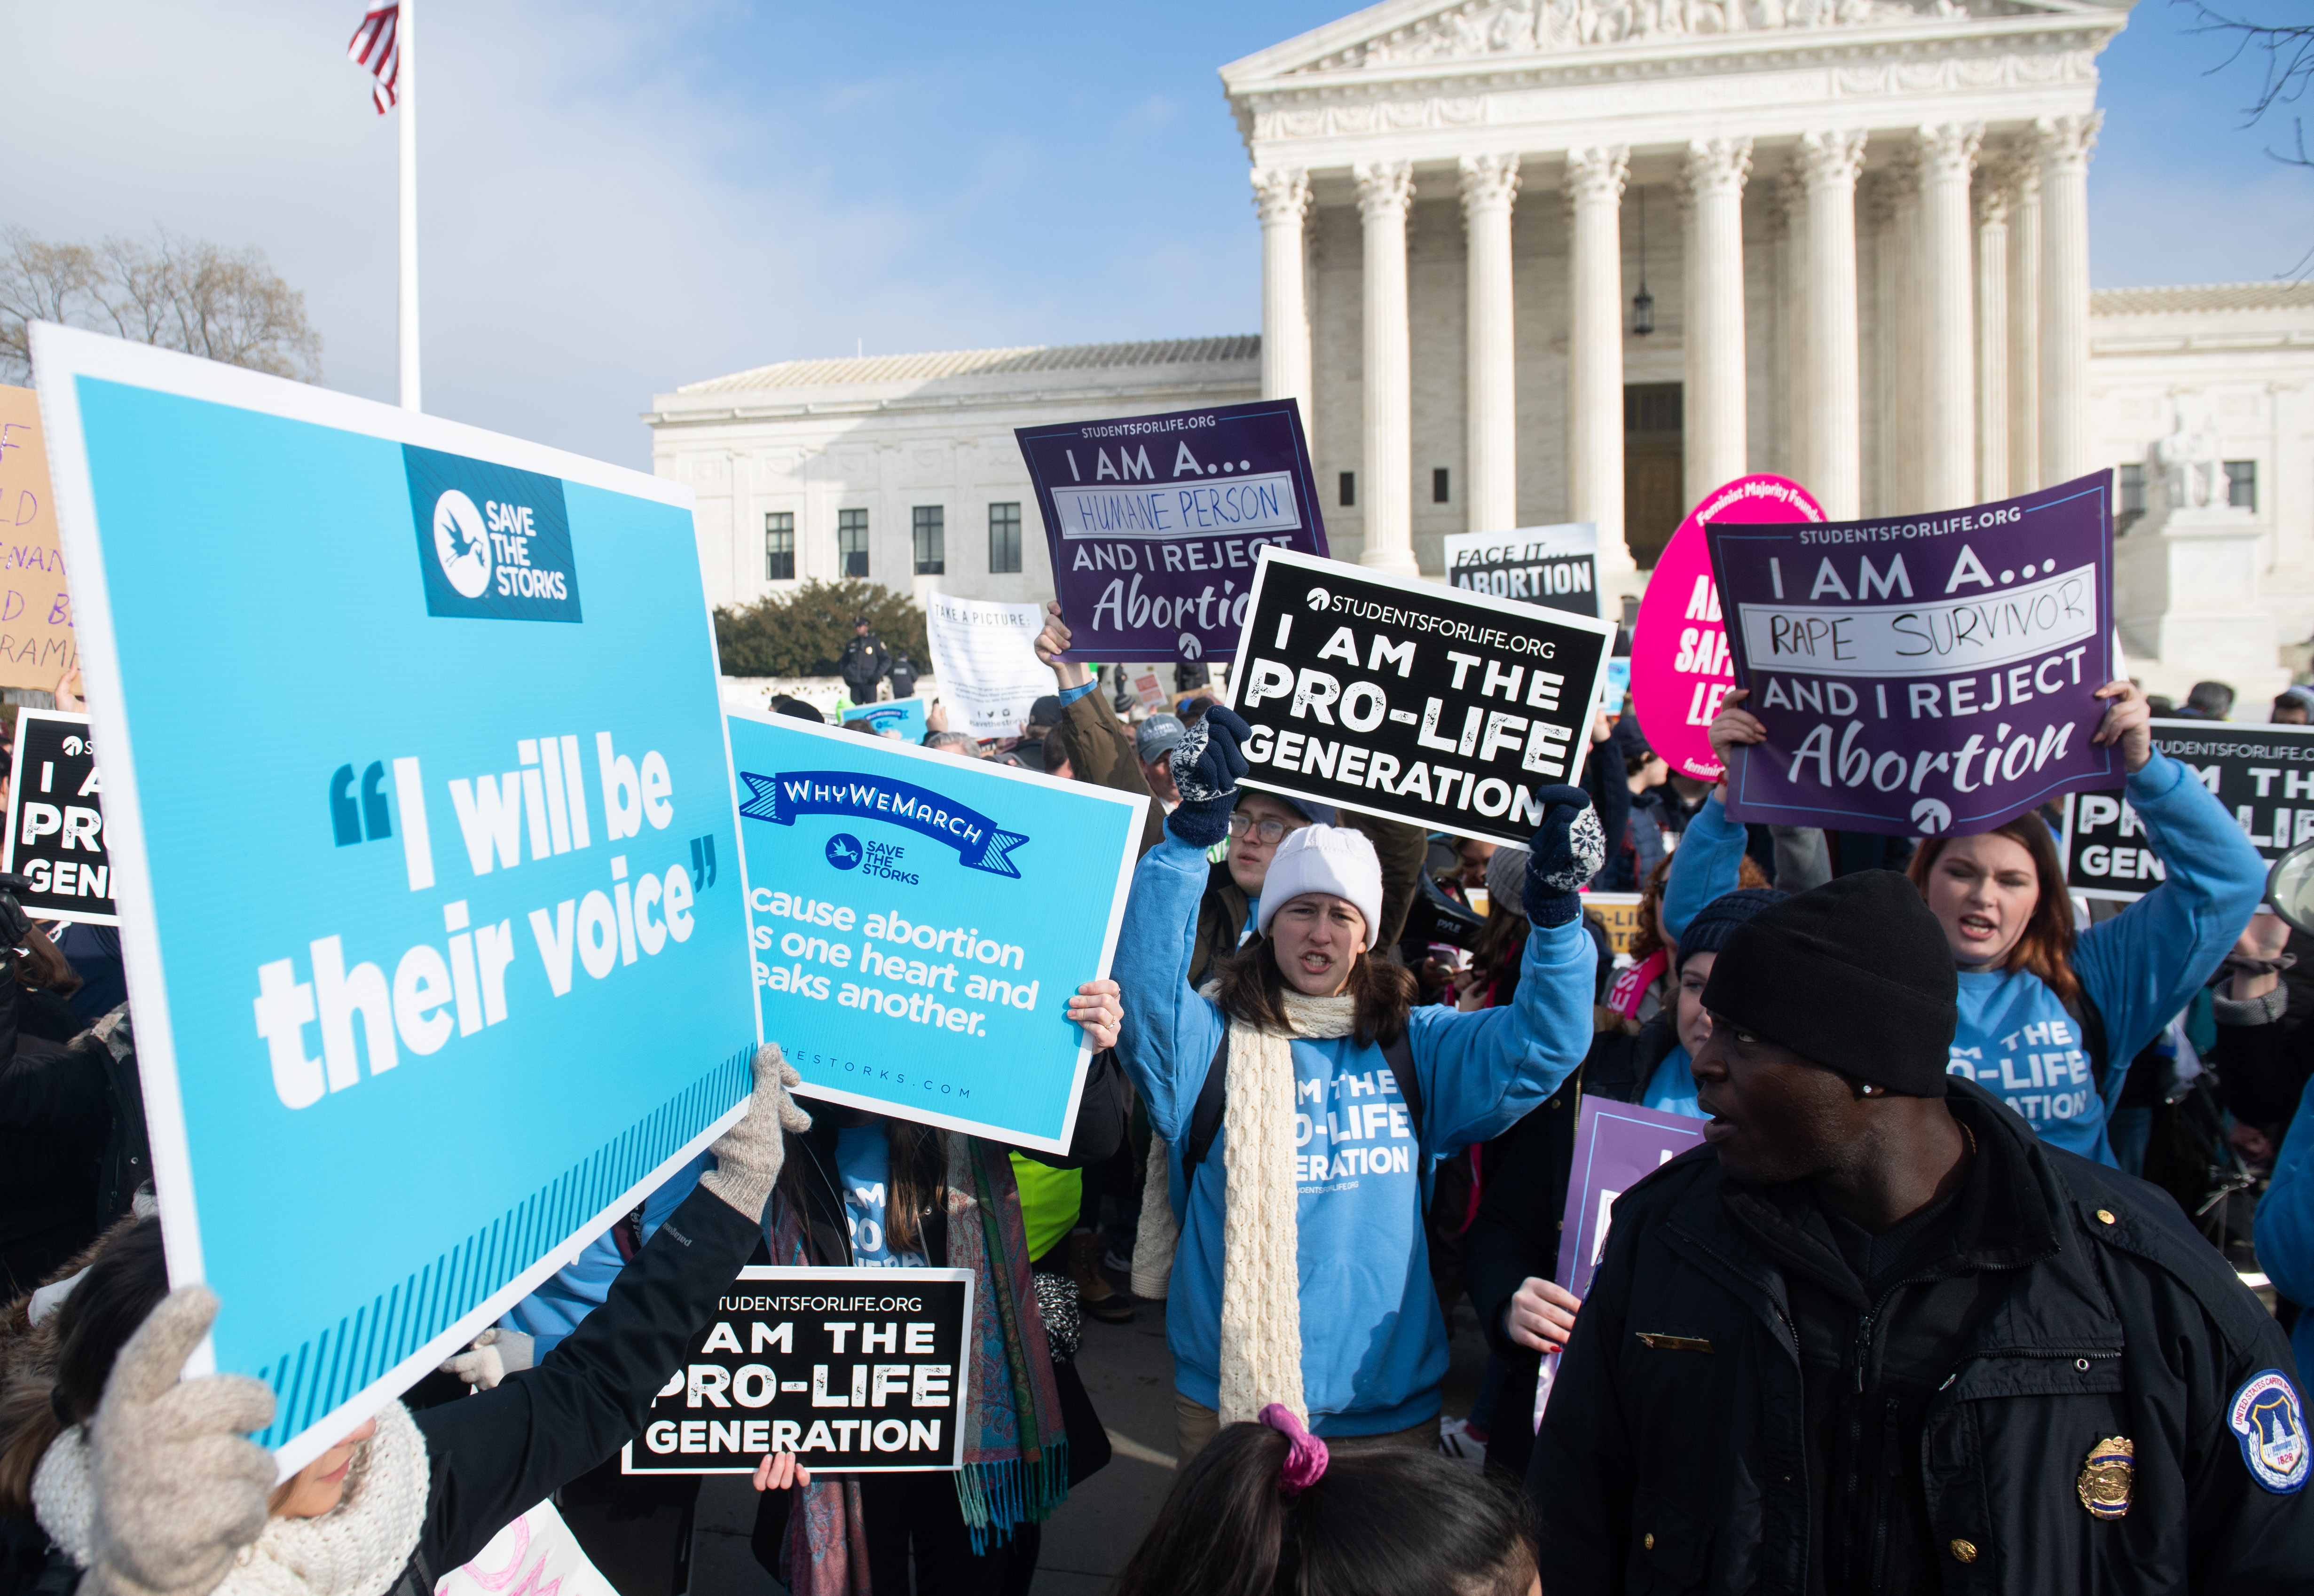 Pro-life activists participate in the March for Life on January 18, 2019. (Saul Loeb/AFP/Getty Images)